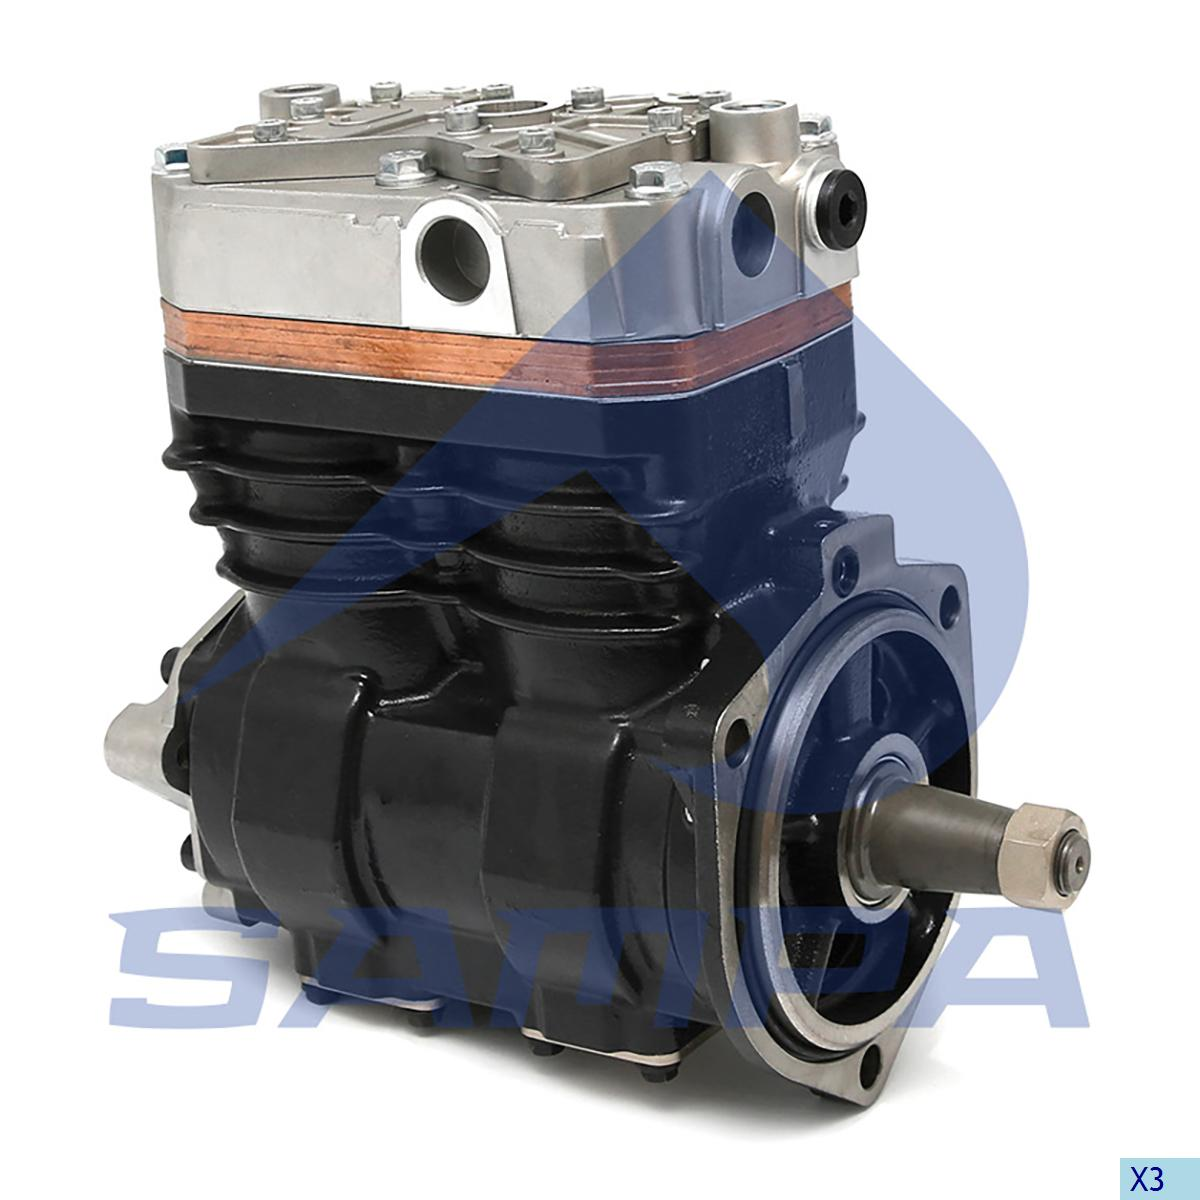 Compressor, Iveco, Compressed Air System